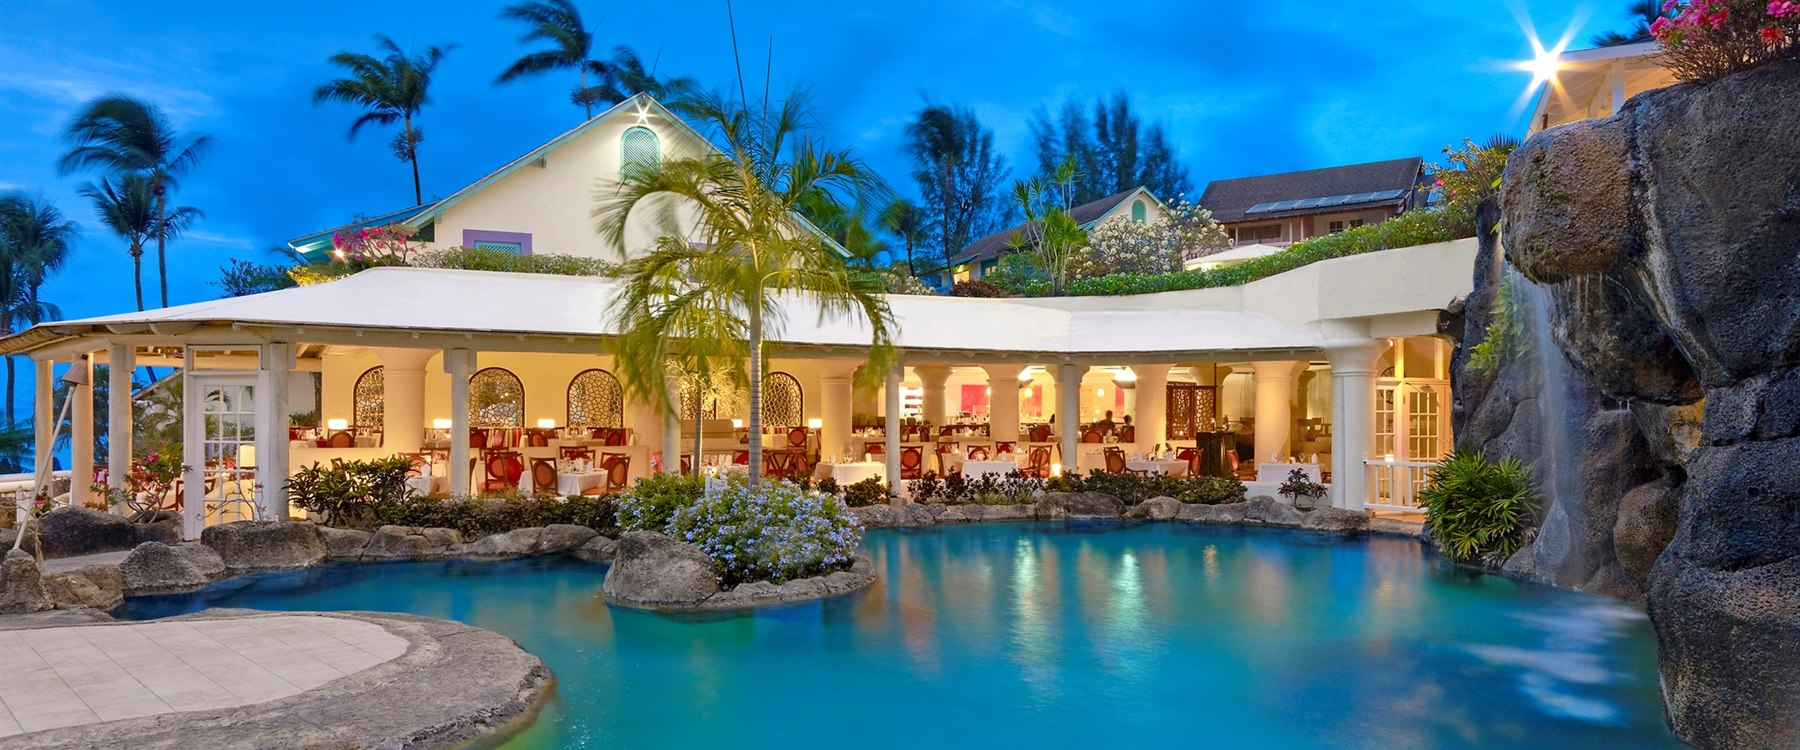 Reflections Restaurant with Refreshing Open Air Setting at Crystal Cove, Barbados